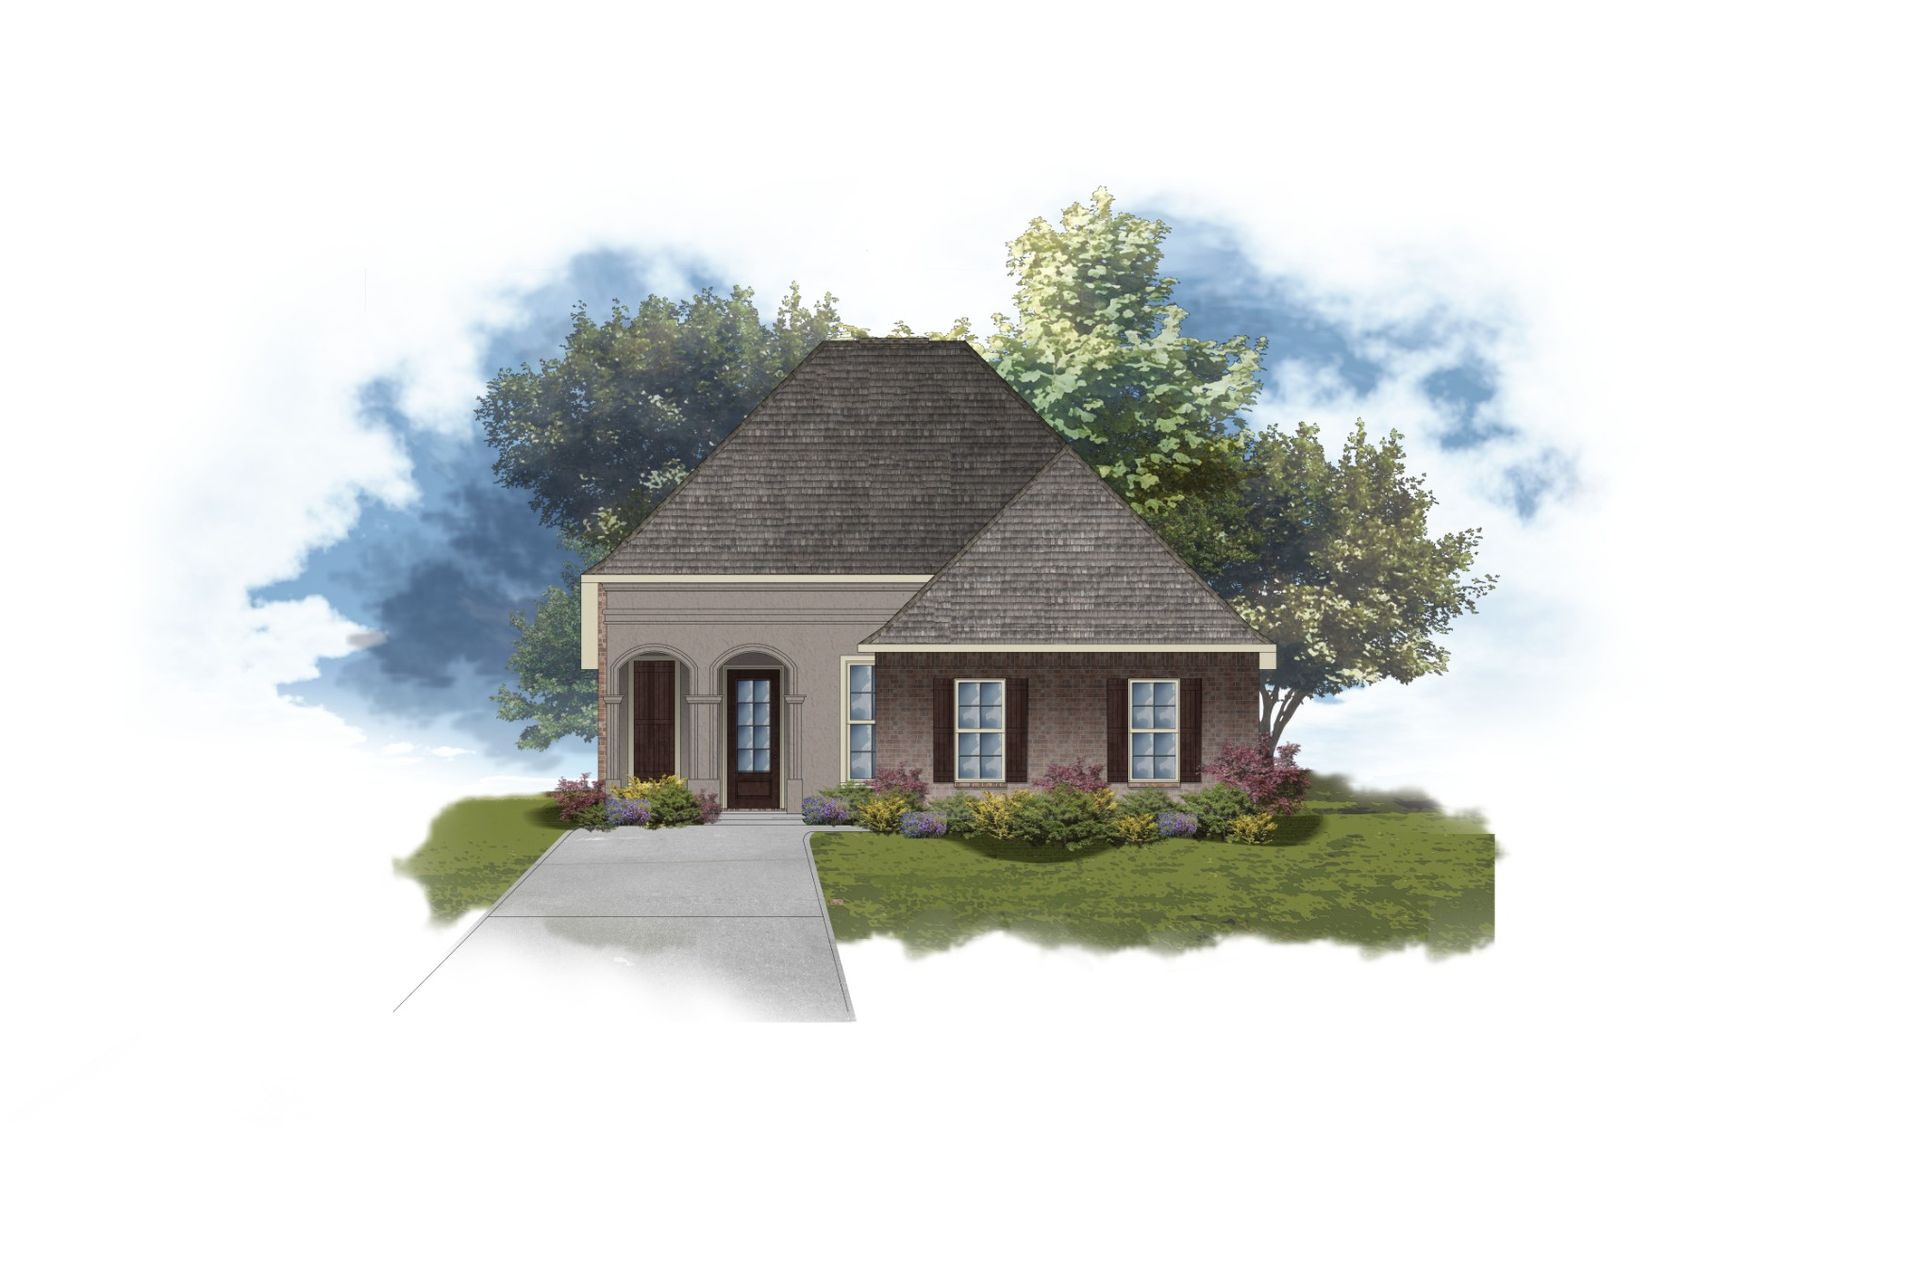 DSLD Homes - Rousseau II A Open Floor-plan Elevation Image